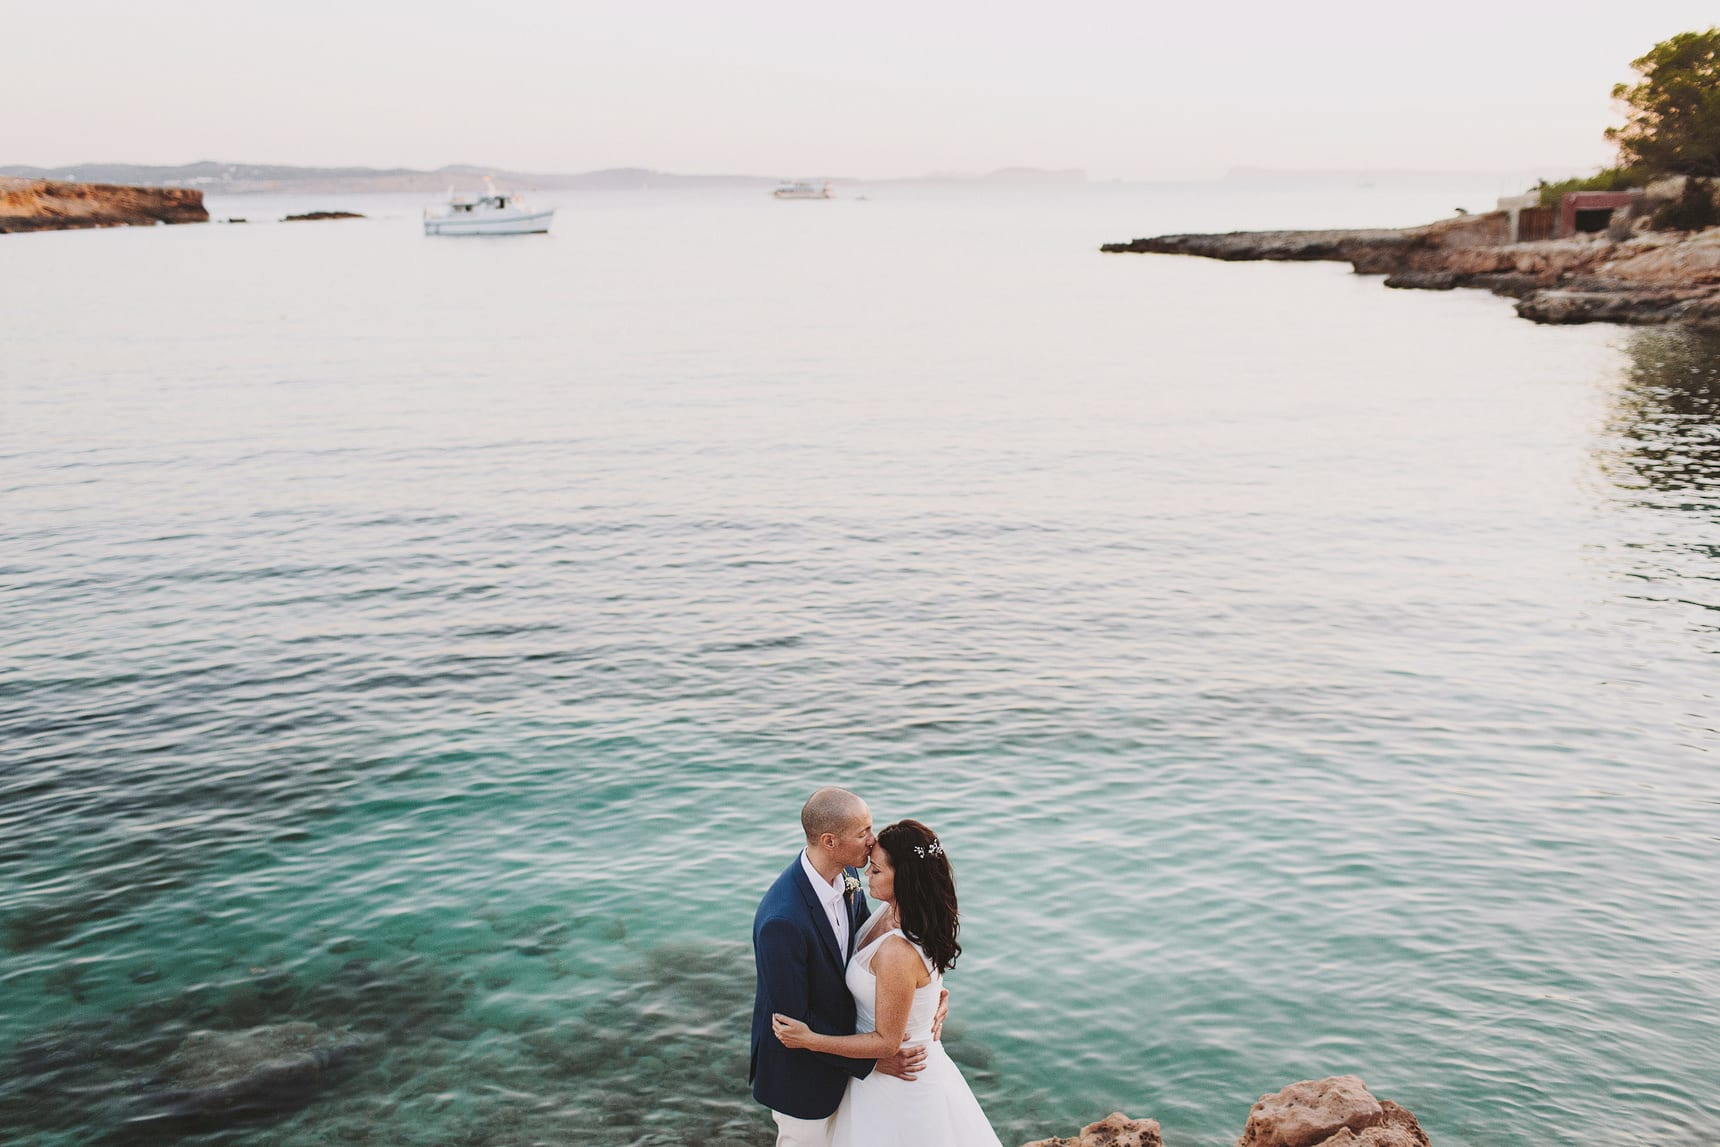 oceanfront wedding photos